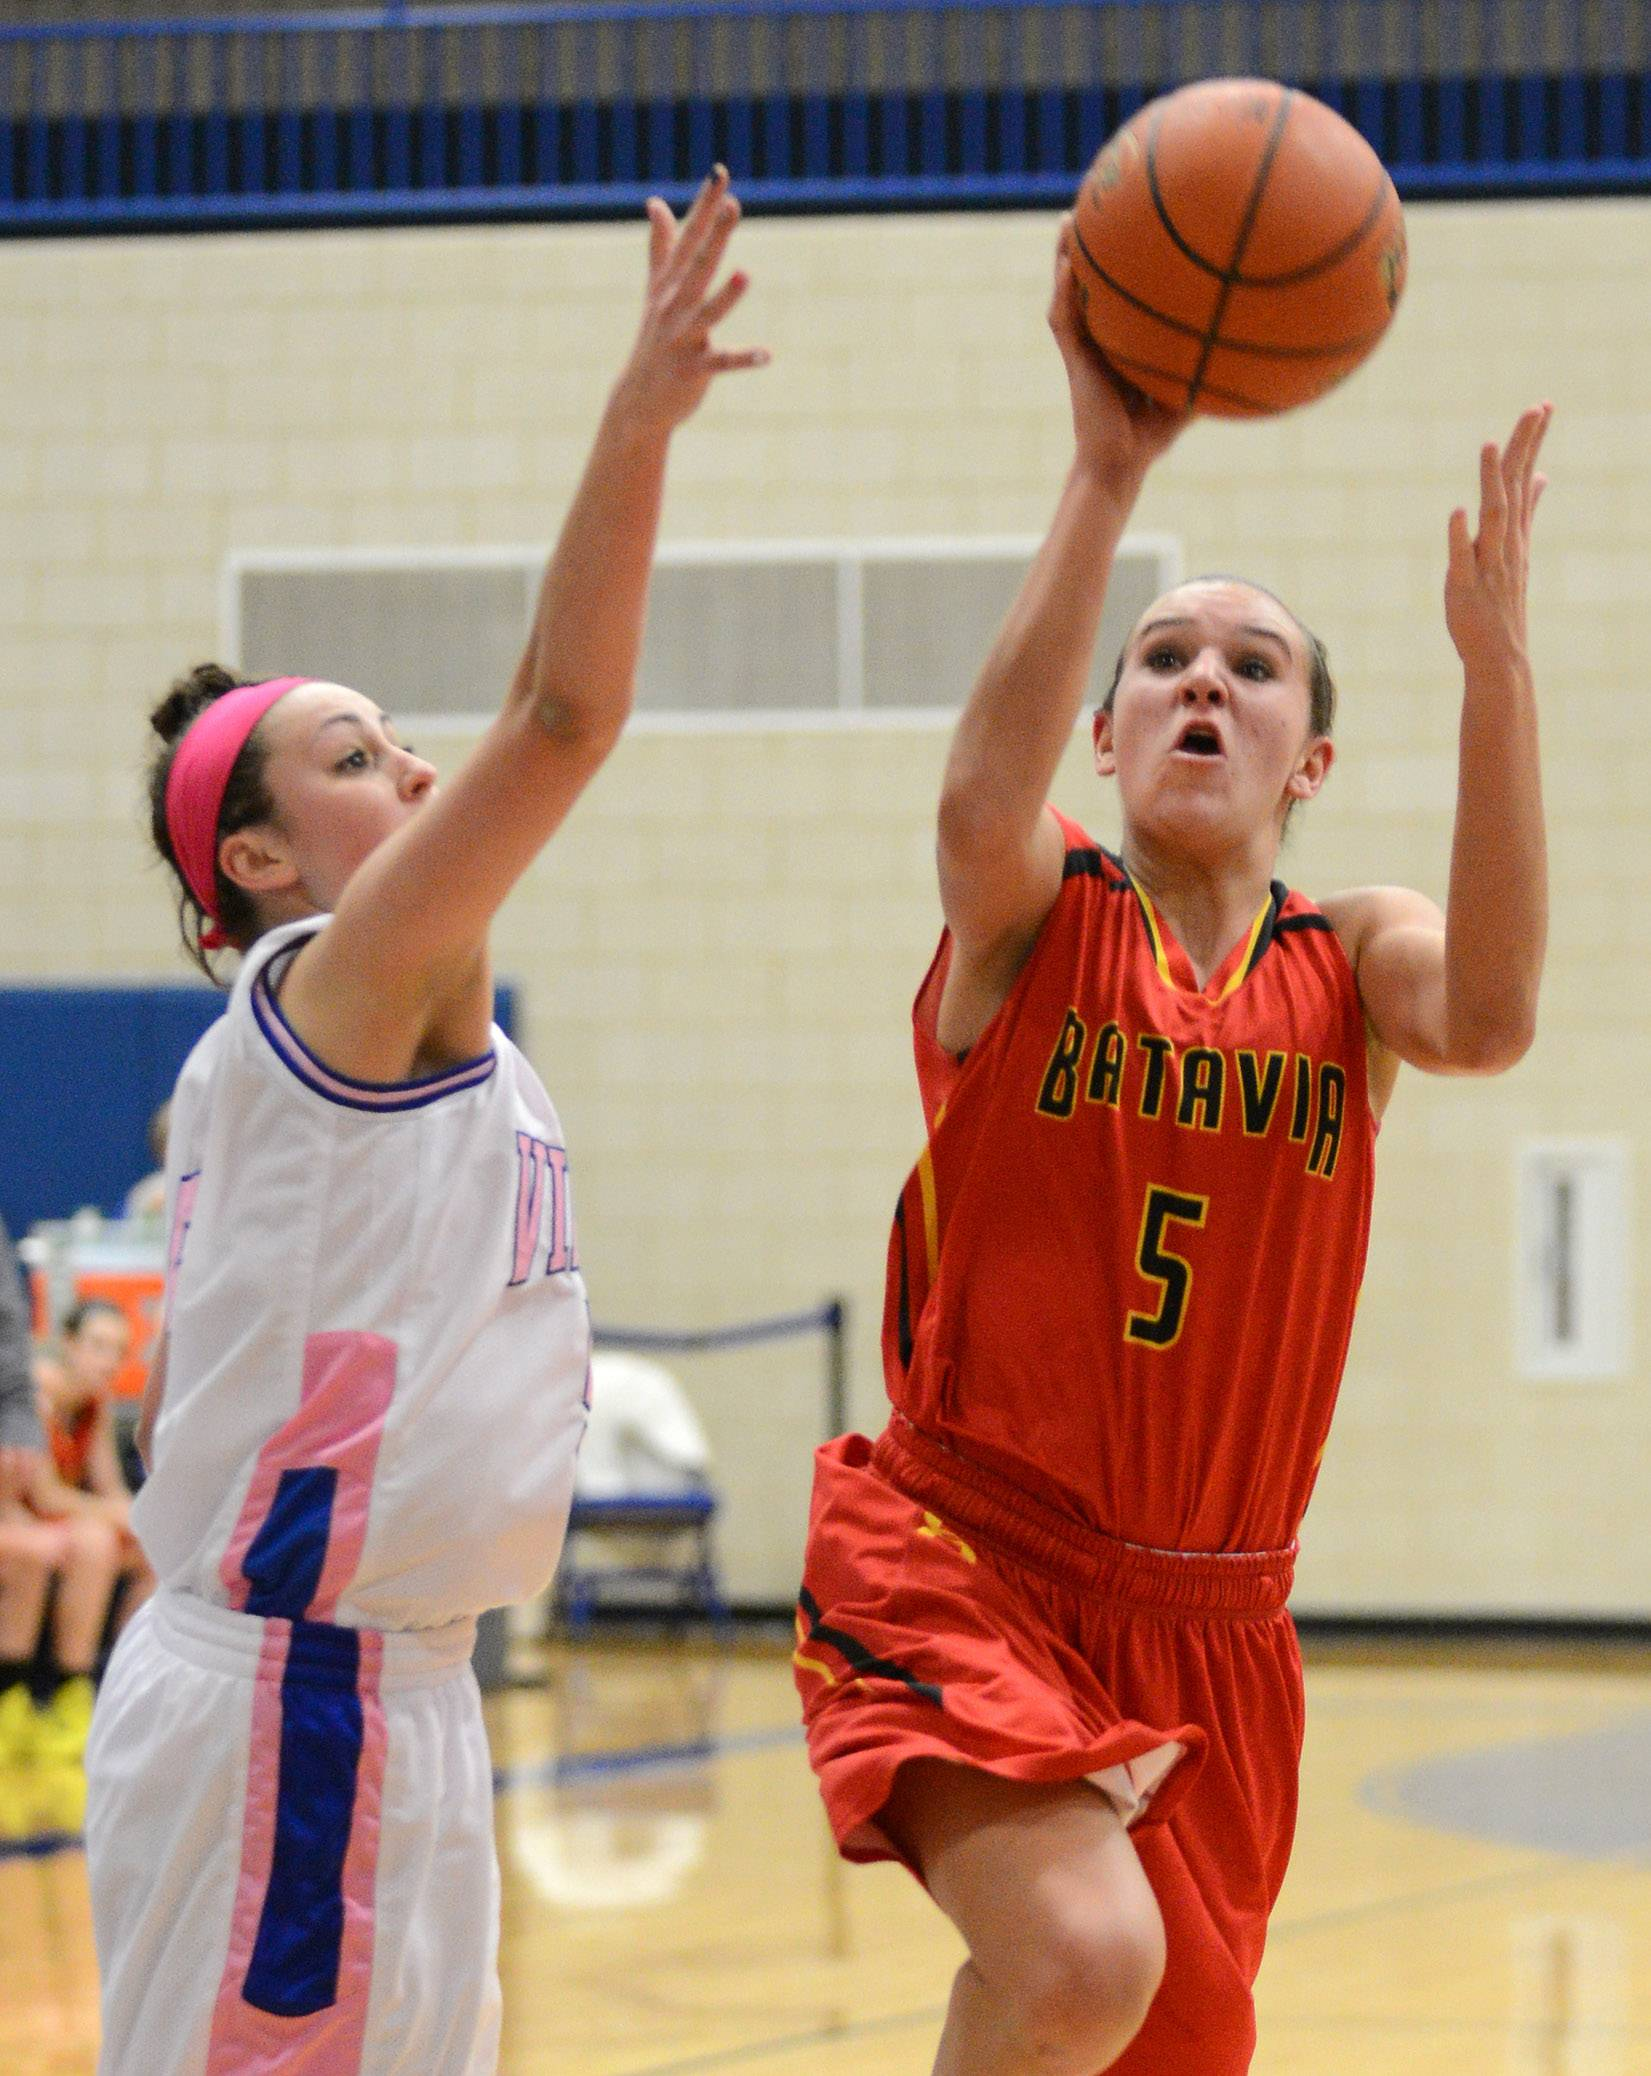 Batavia's Fruendt finishes record-setting career on top